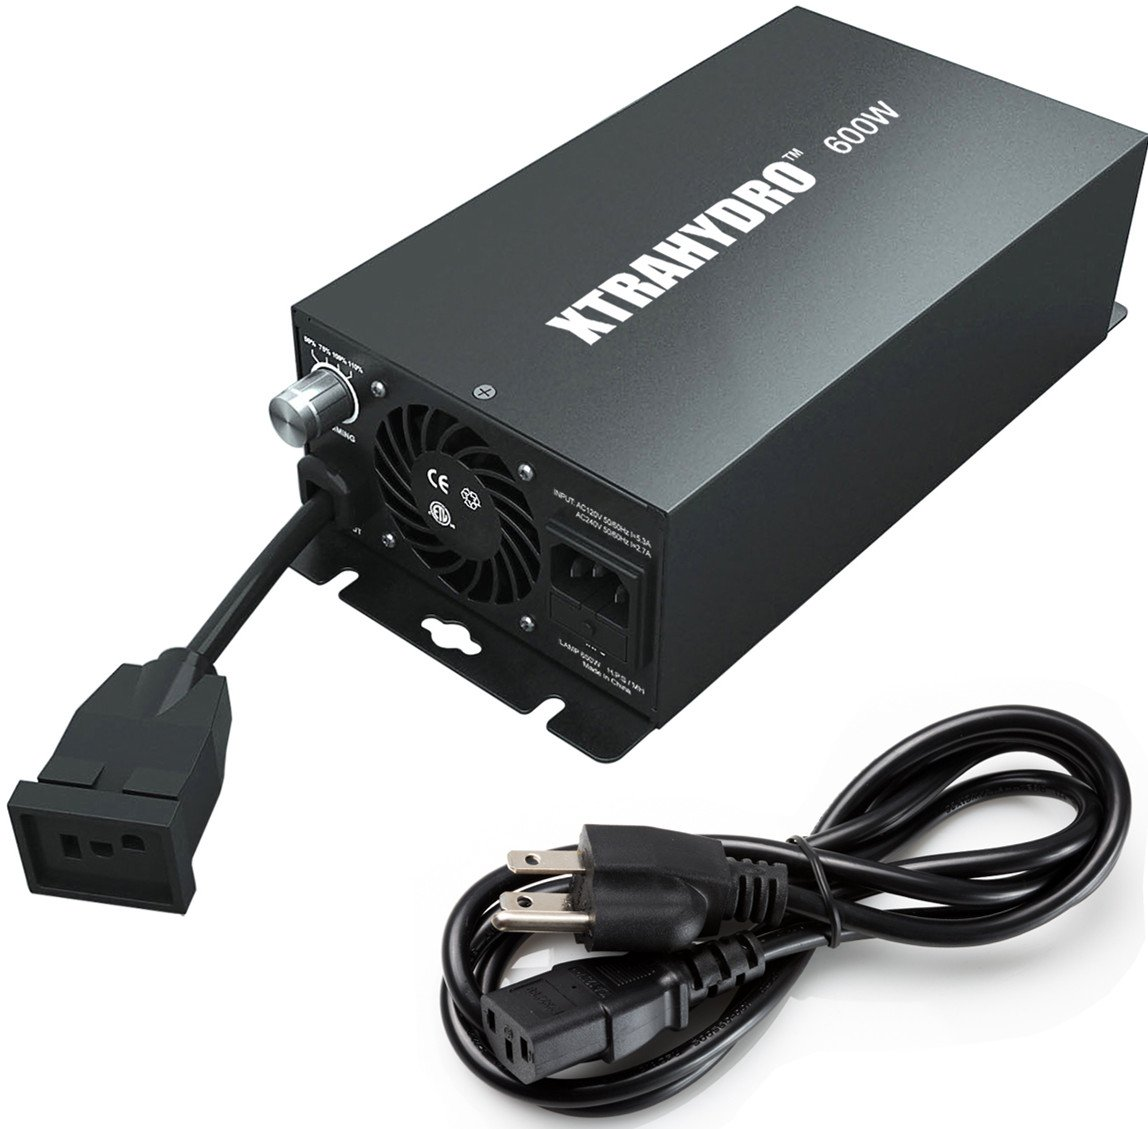 600W Dimmable Electronic Ballast, XTRAHYDRO Hydroponic PUF 600 Watt Digital Ballast for Grow Light, HPS MH Supported